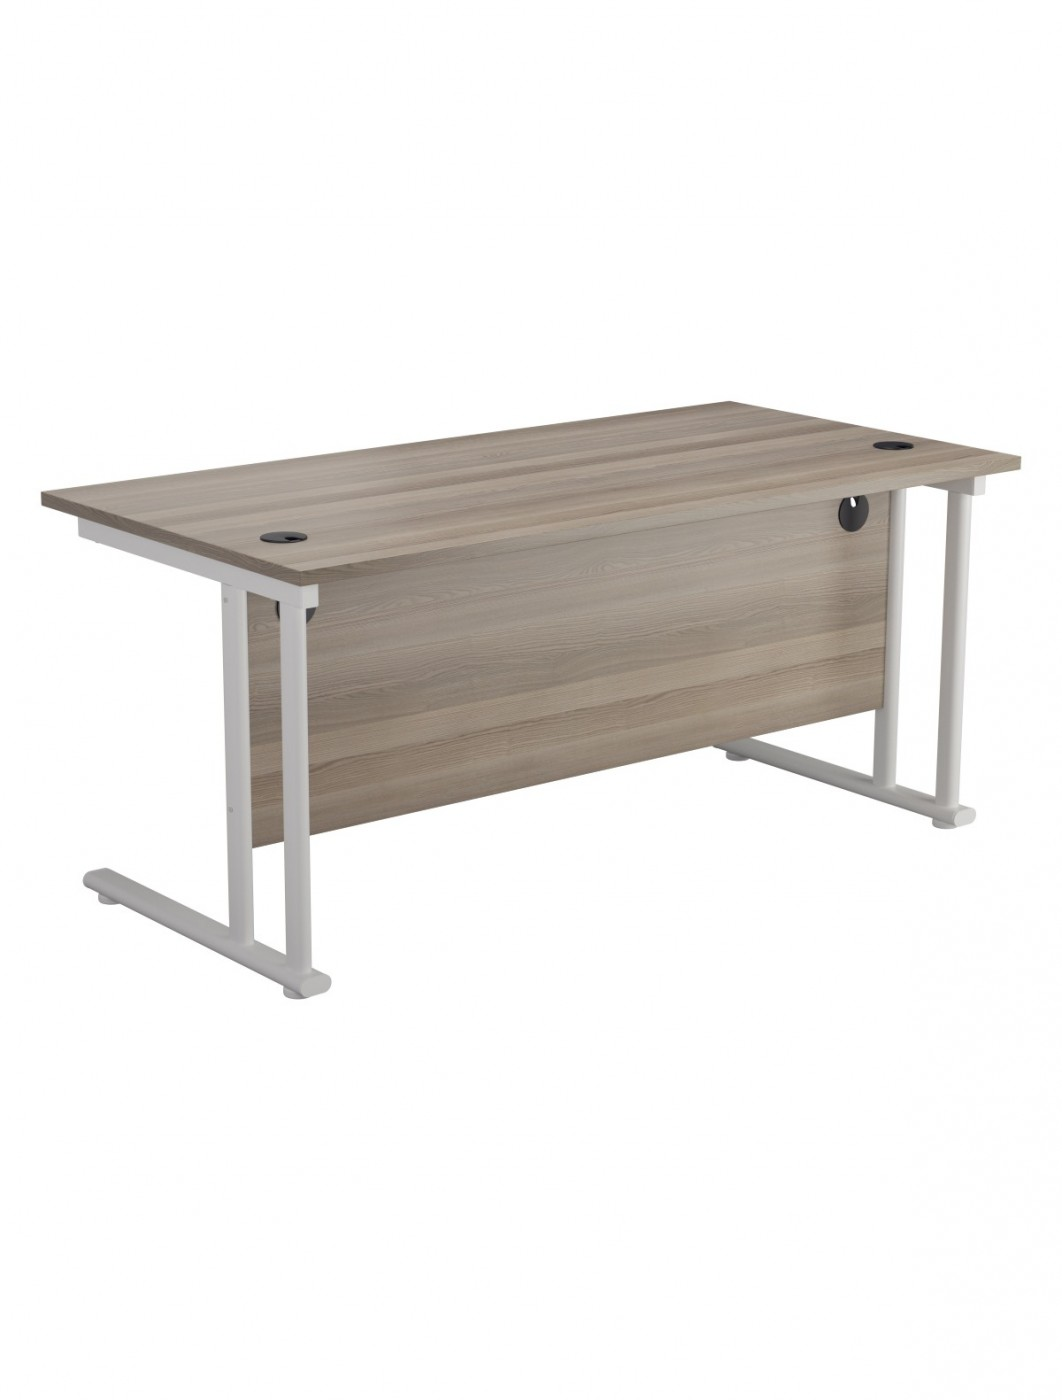 Grey Oak Office Desk 1200x800mm TC Lite Desk OST1280RECCLGO